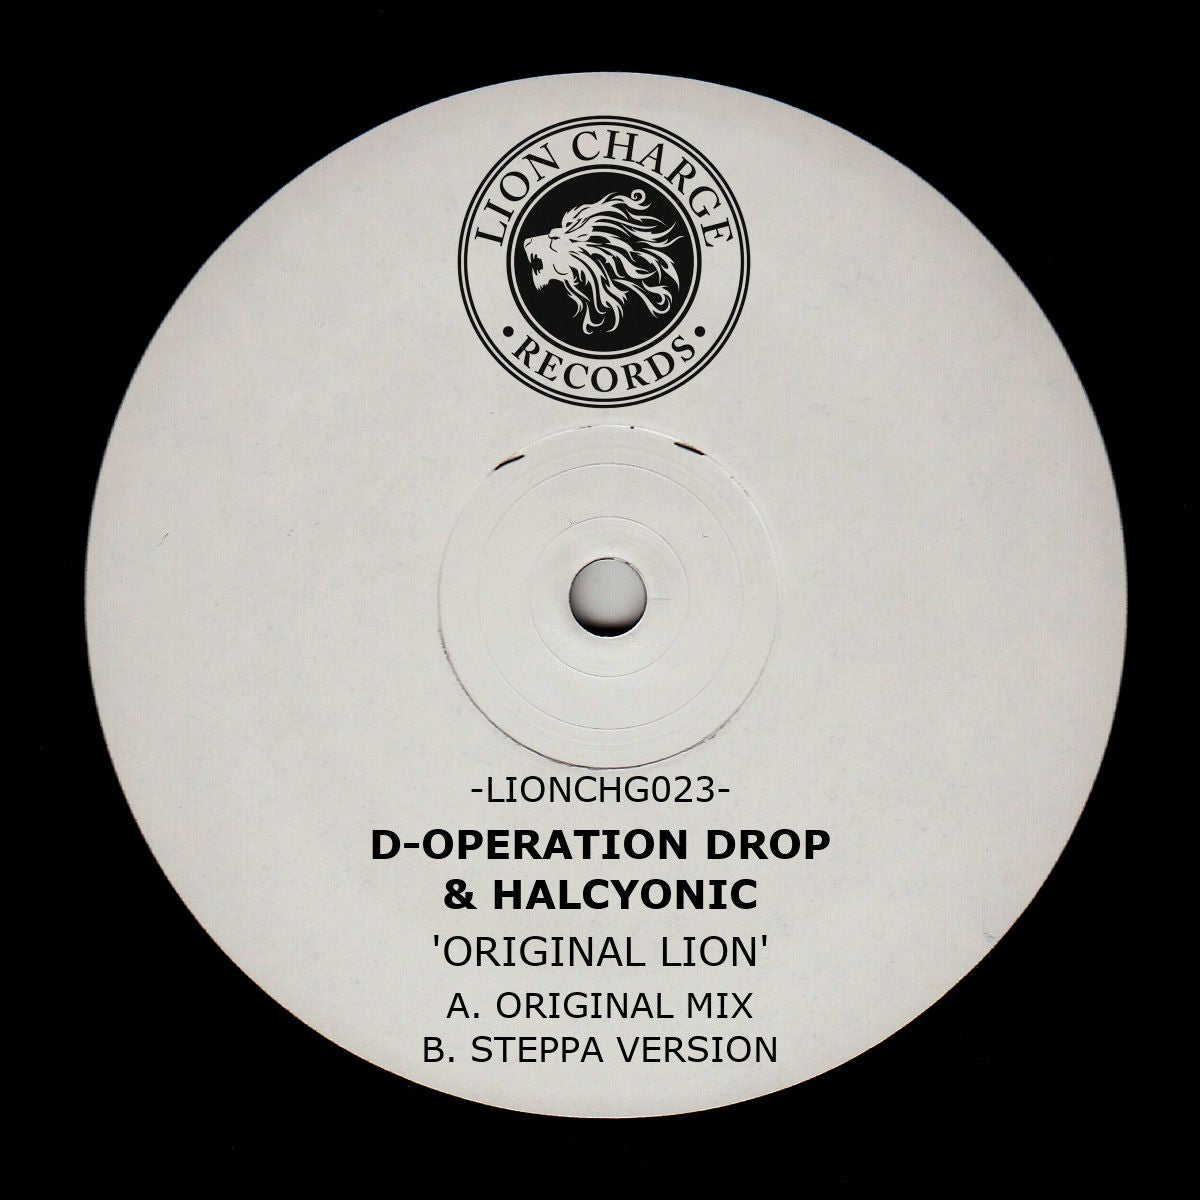 D-Operation Drop & Halcyonic - Original Lion